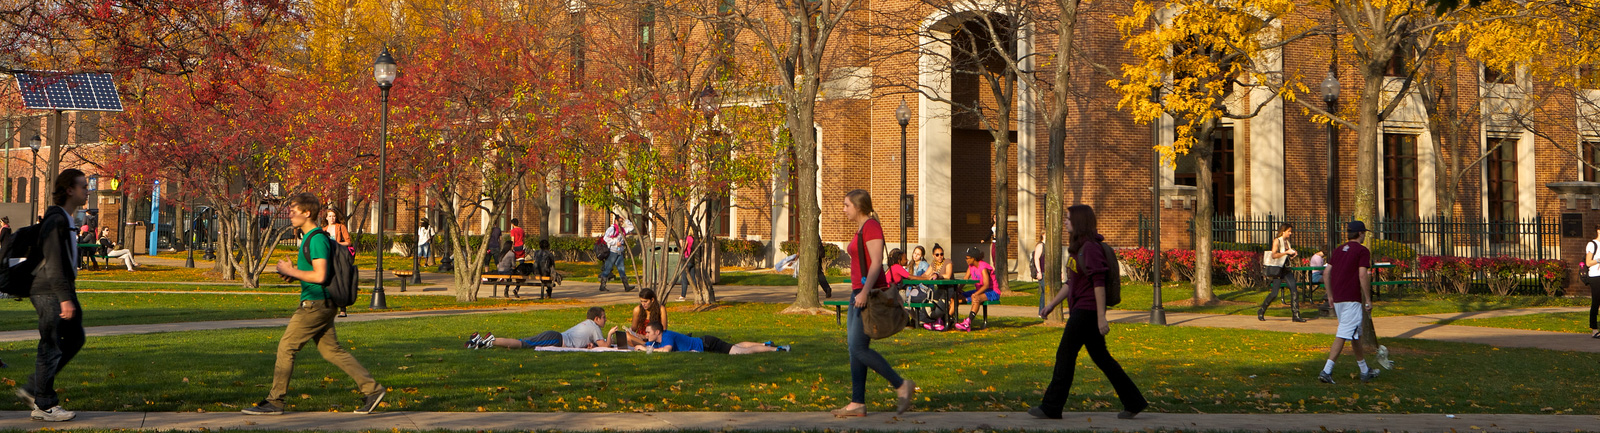 DePaul Students during the fall walking along the Quad pathways and laying out on the Grass